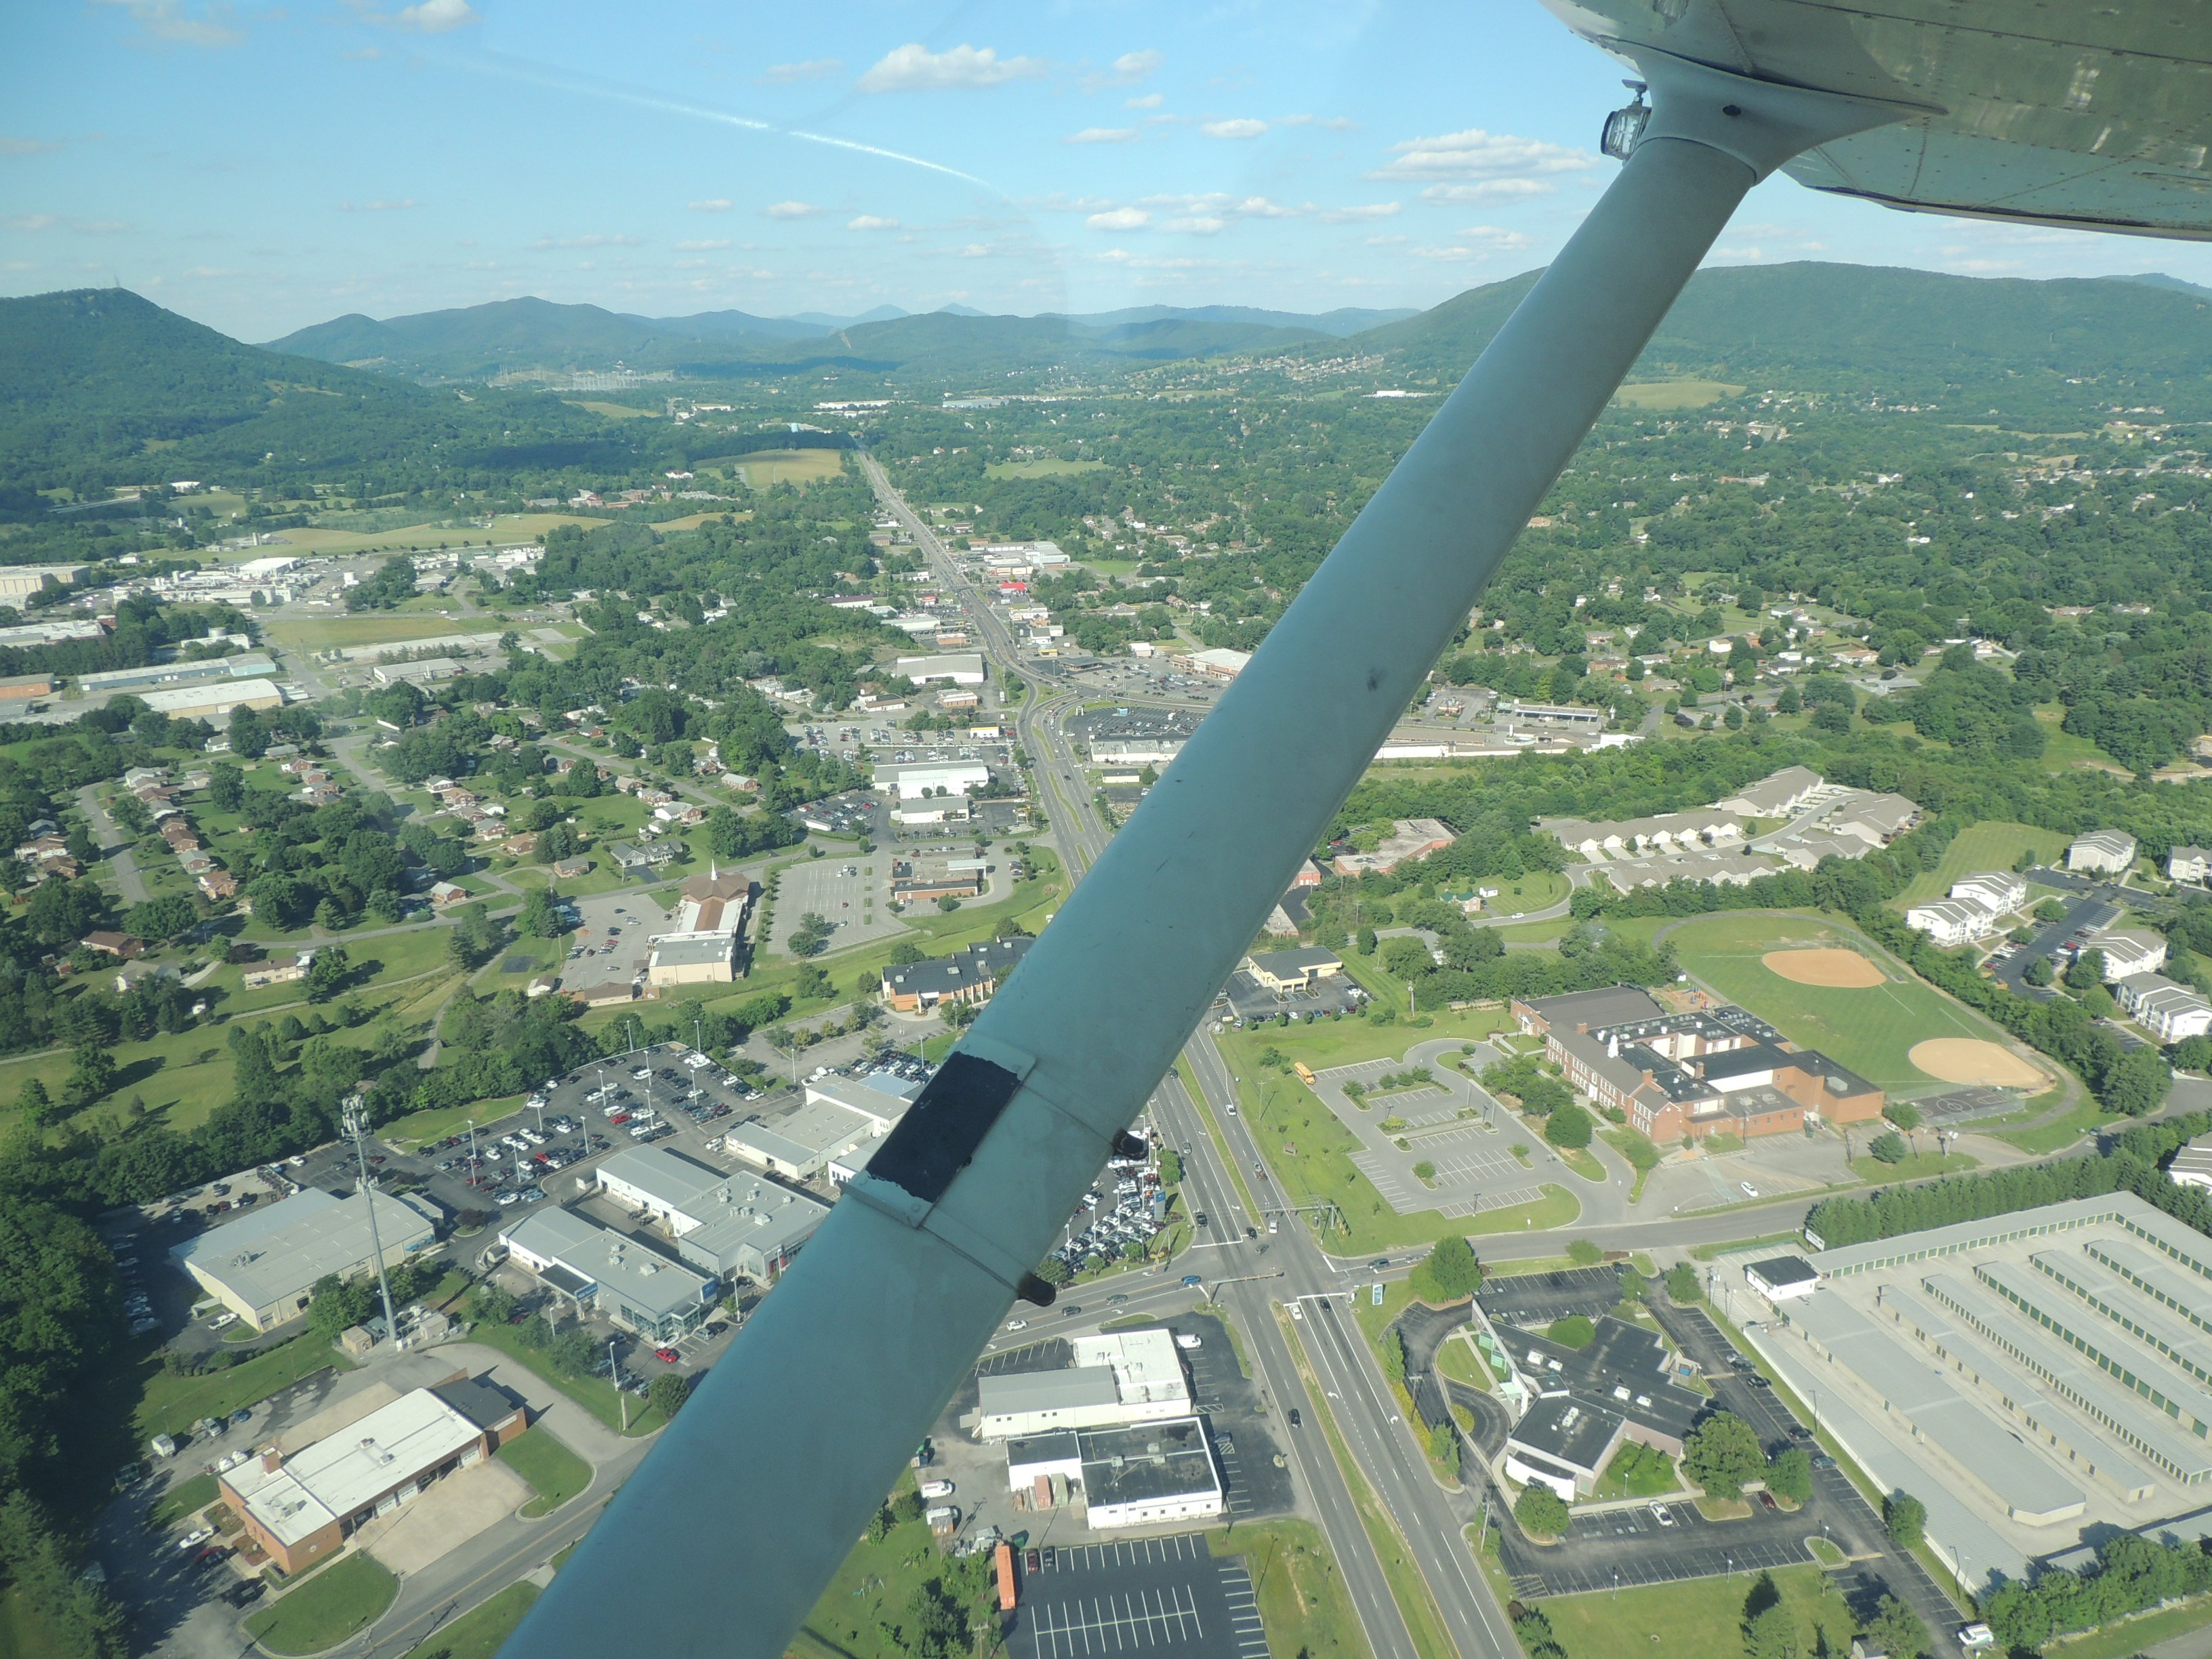 Departing Roanoke VA